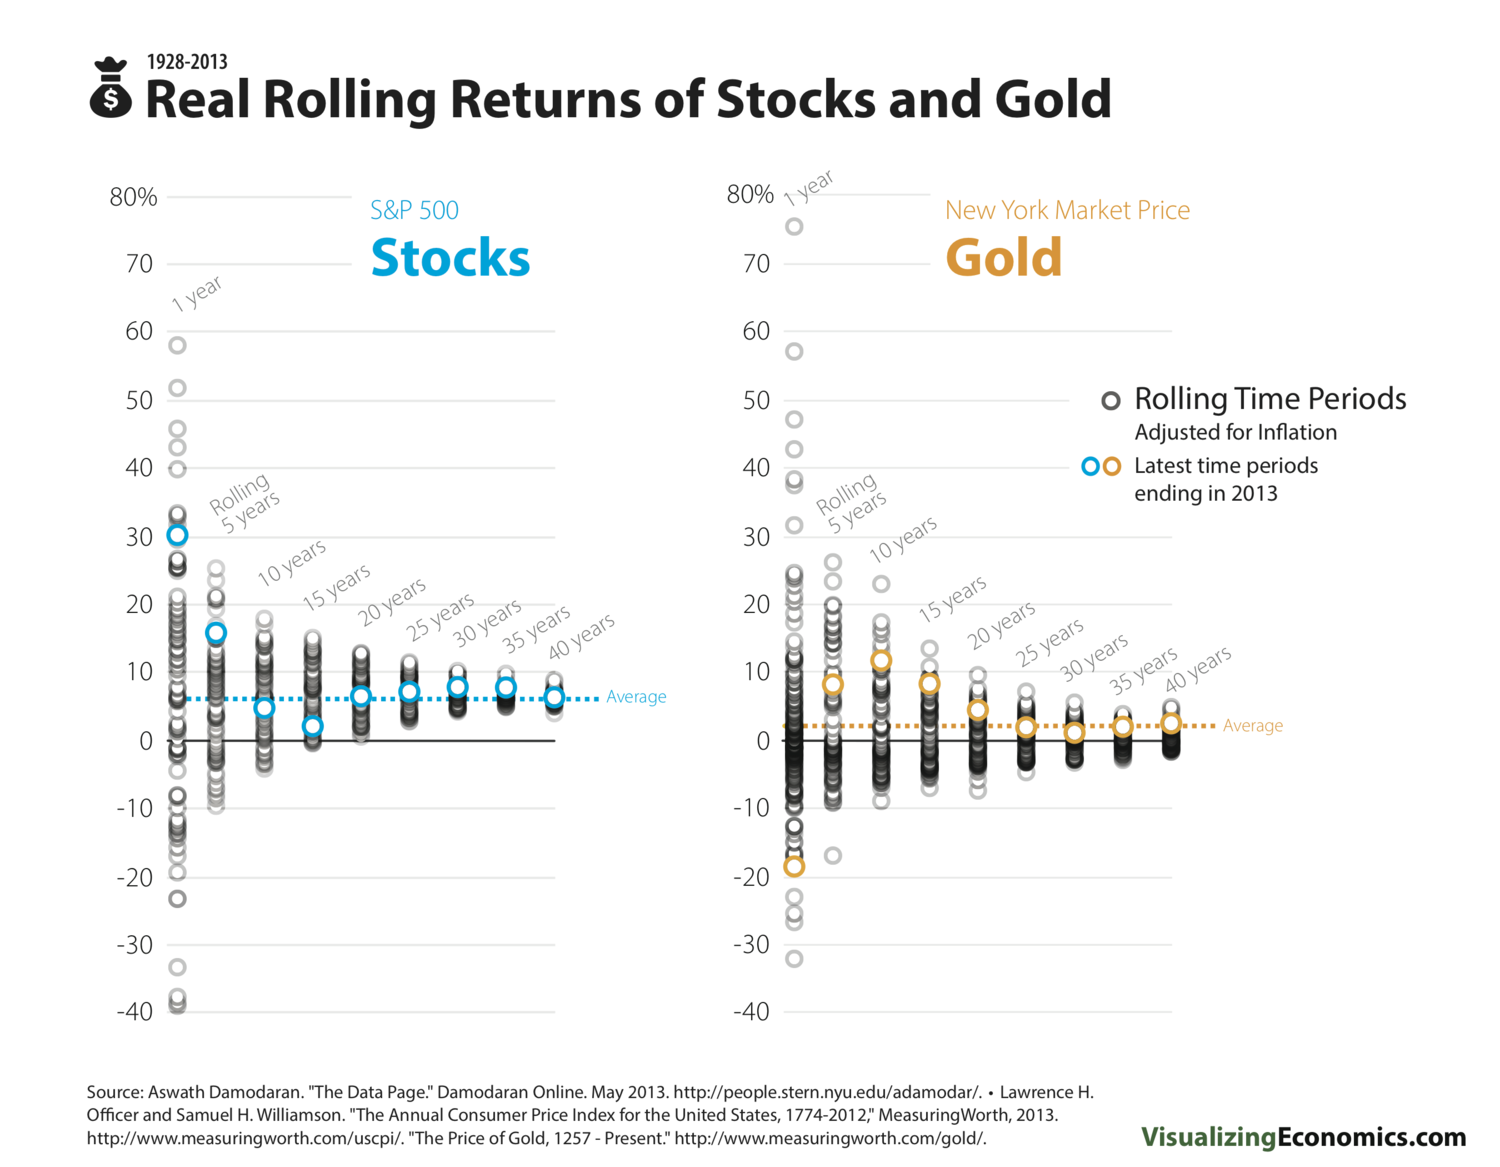 StockGoldRealRollingReturns_2013